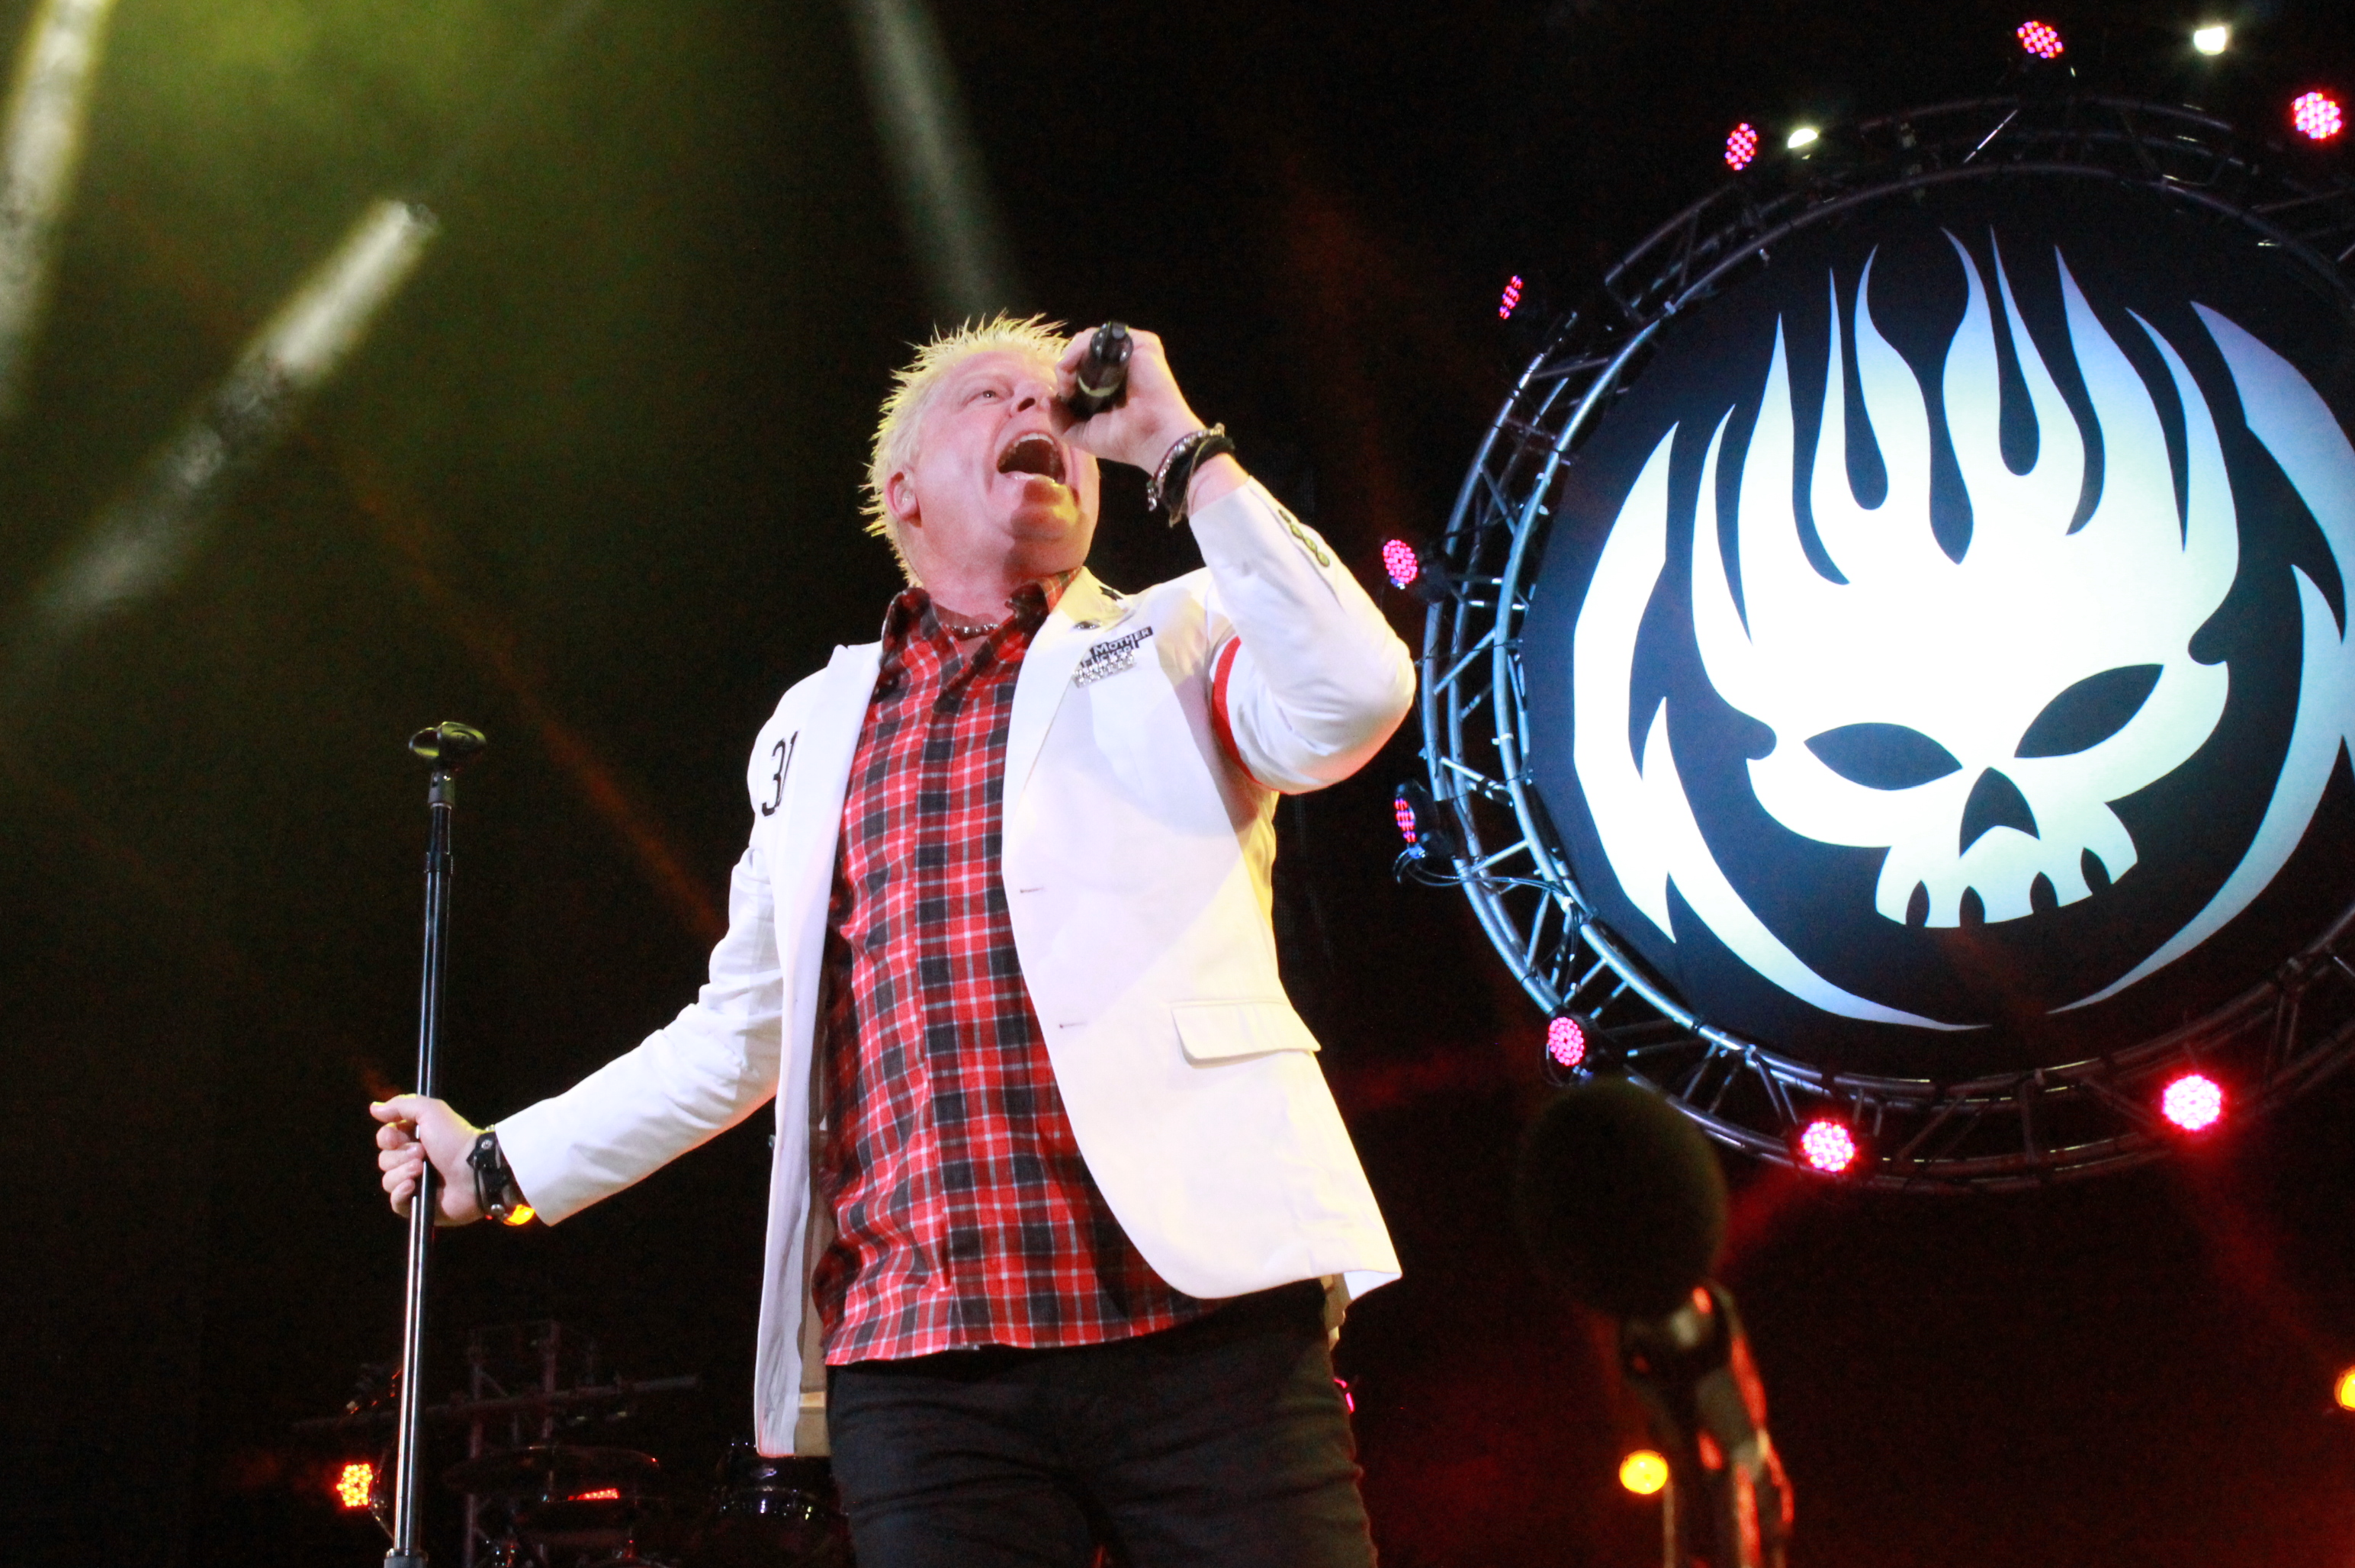 Founding Member of The Offspring Greg Kriesel Suing Bandmates